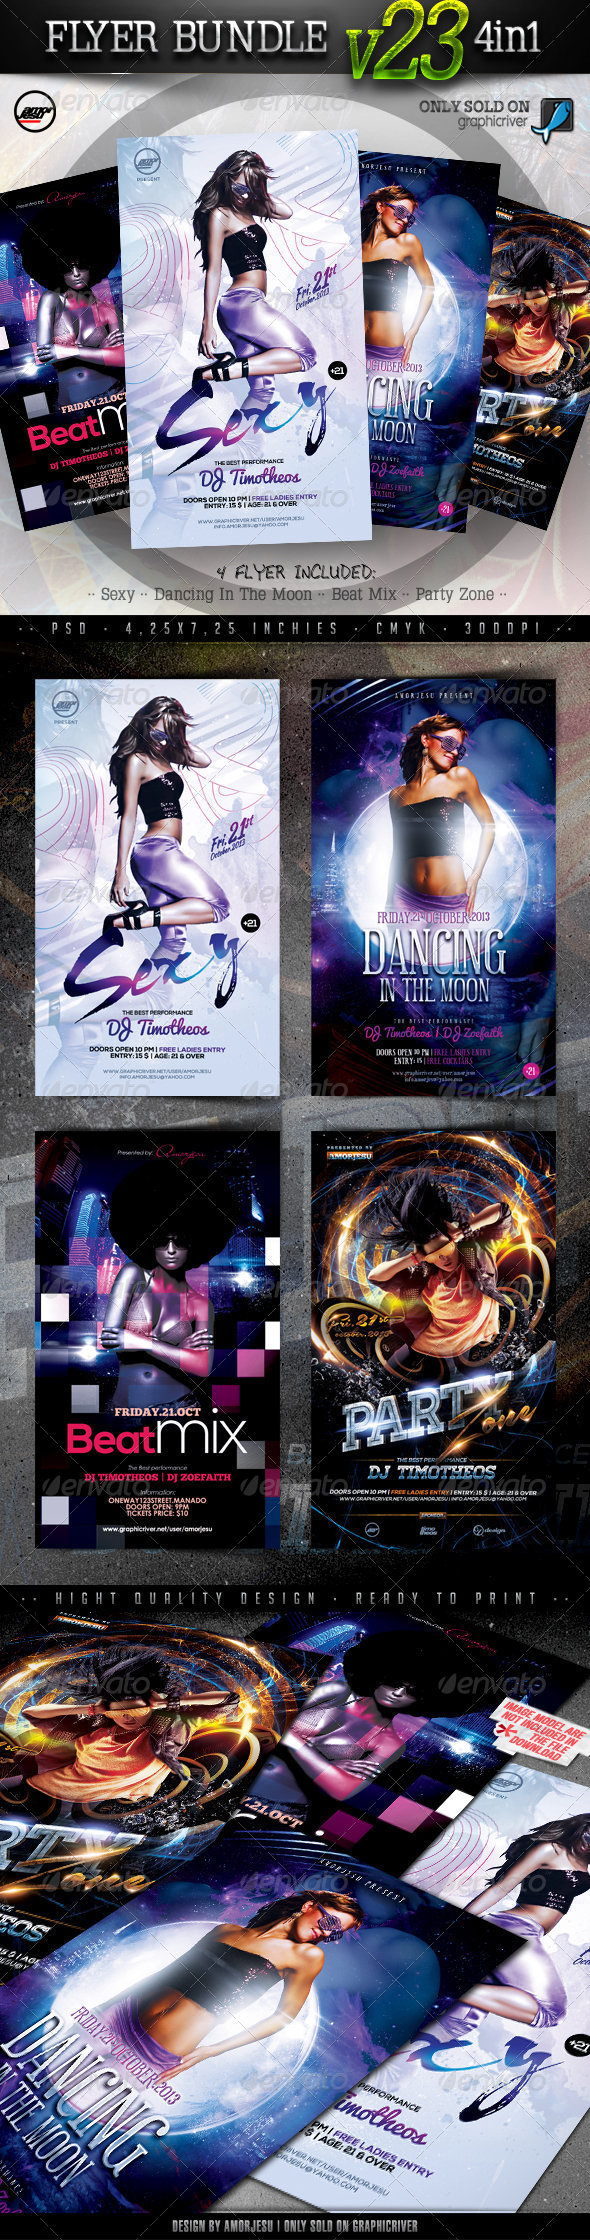 Flyer Bundle Vol23 - 4 in 1 - Clubs & Parties Events